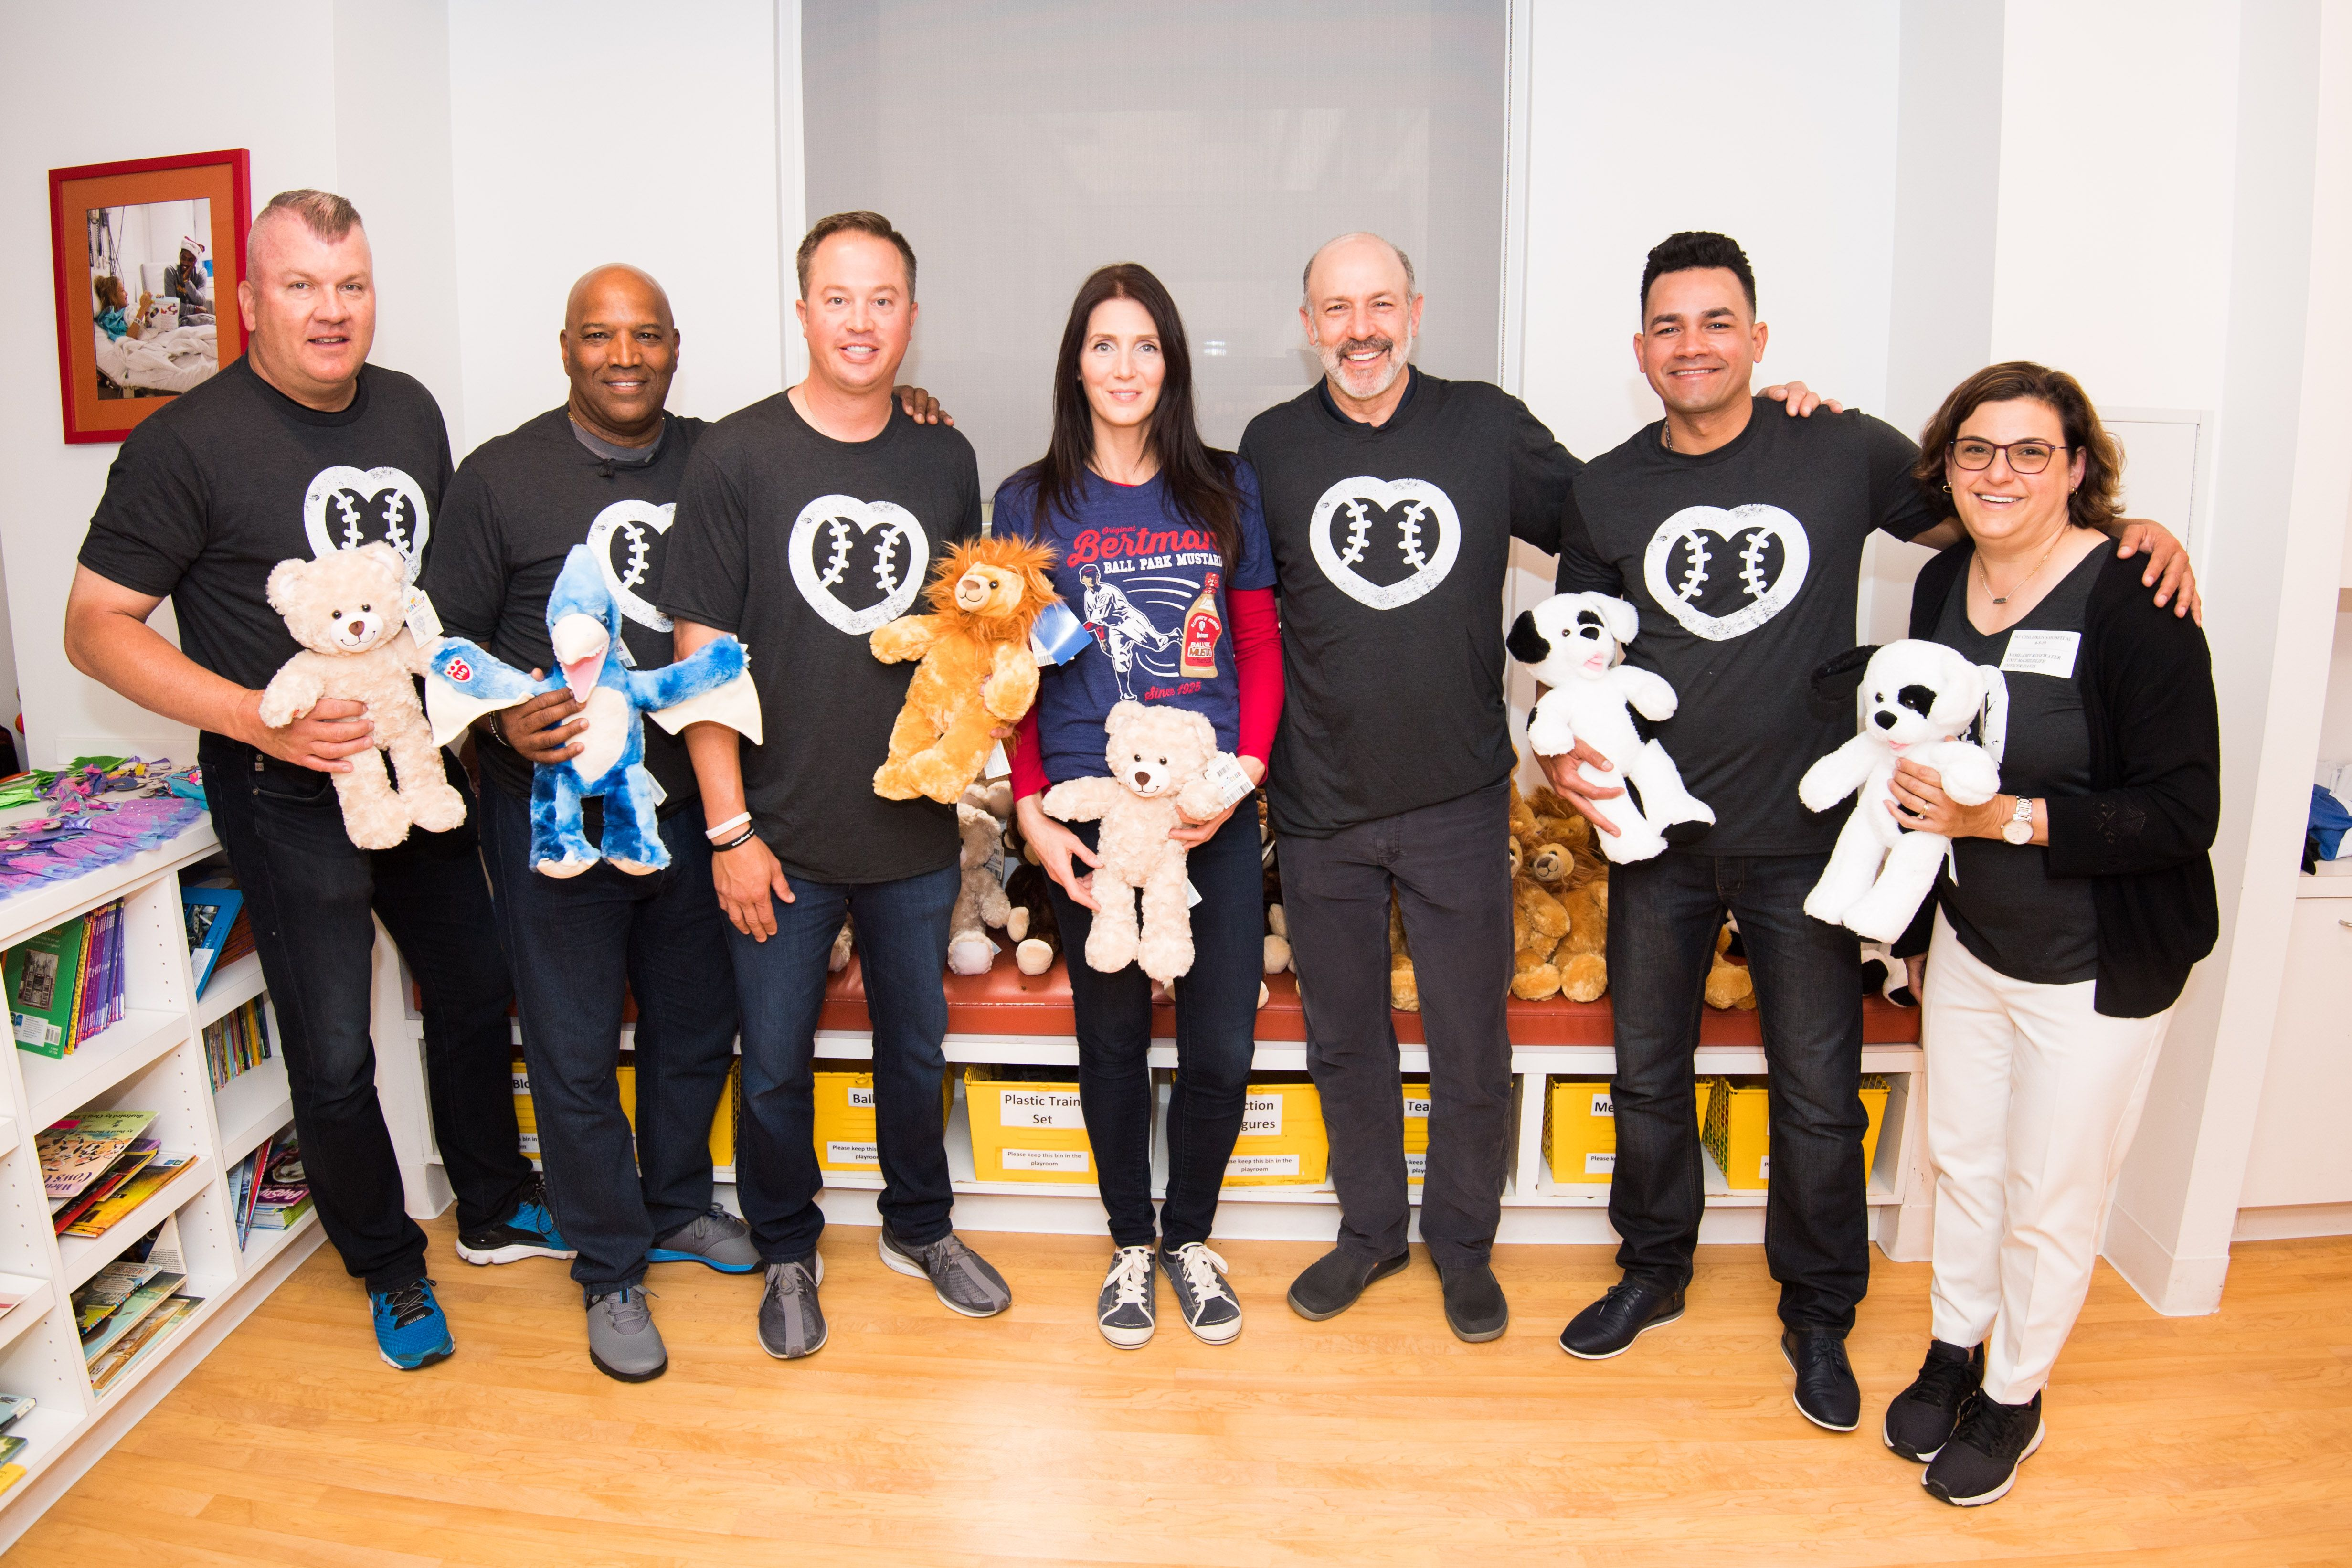 Last Month We Partnered With Mlb Auctions To Help Raise Money For Umps Care Charities Michael And Gayle From The Bertman Original Cleveland Clinic Mlb At Risk Youth